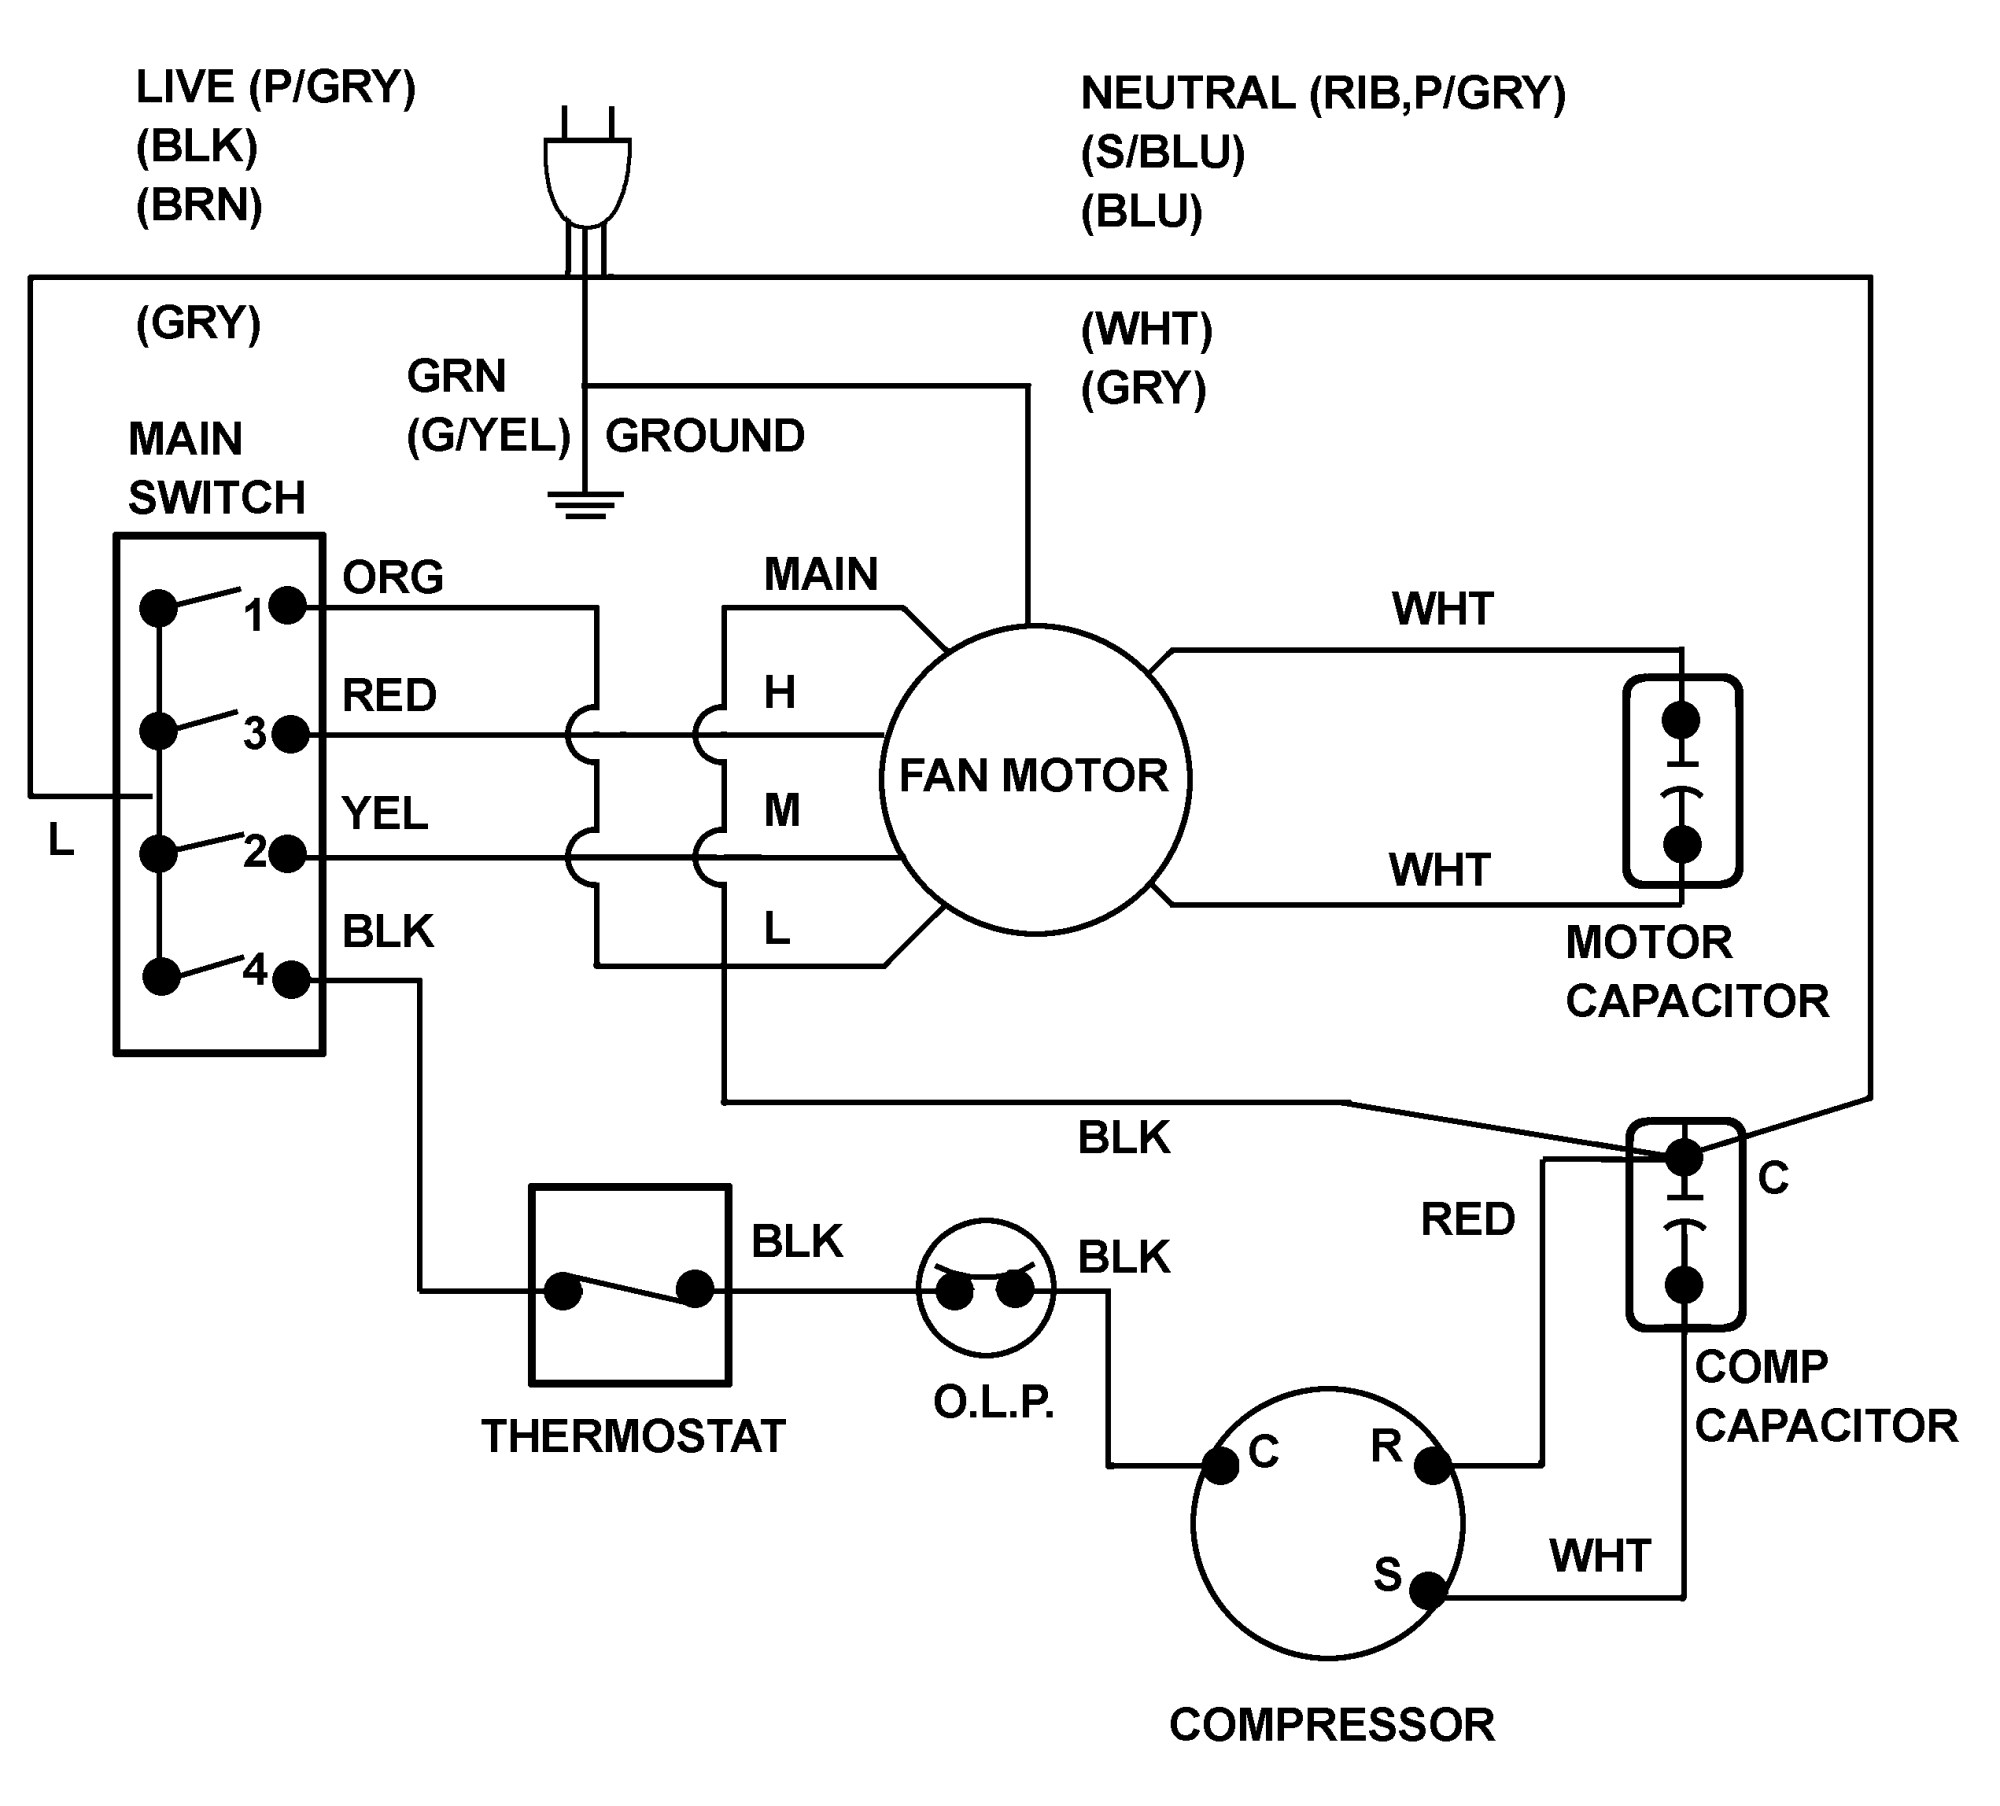 hight resolution of central air wiring diagram wiring diagram megaac central air fuse box wiring diagram img central air